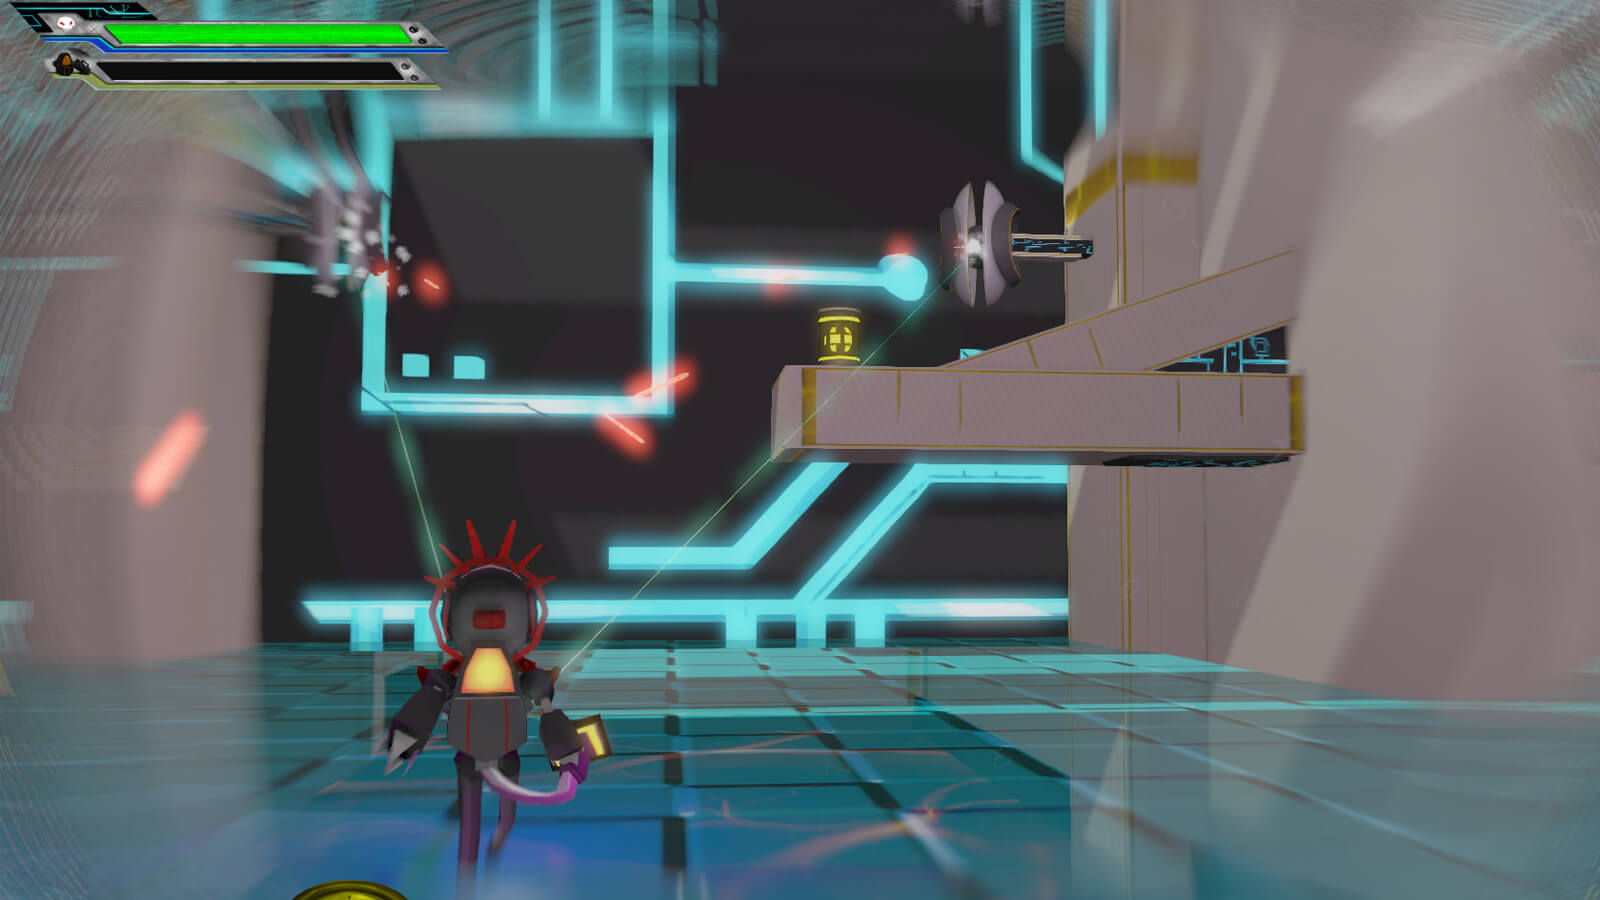 The player's character aims at an enemy up and to the right as lasers fly through the air